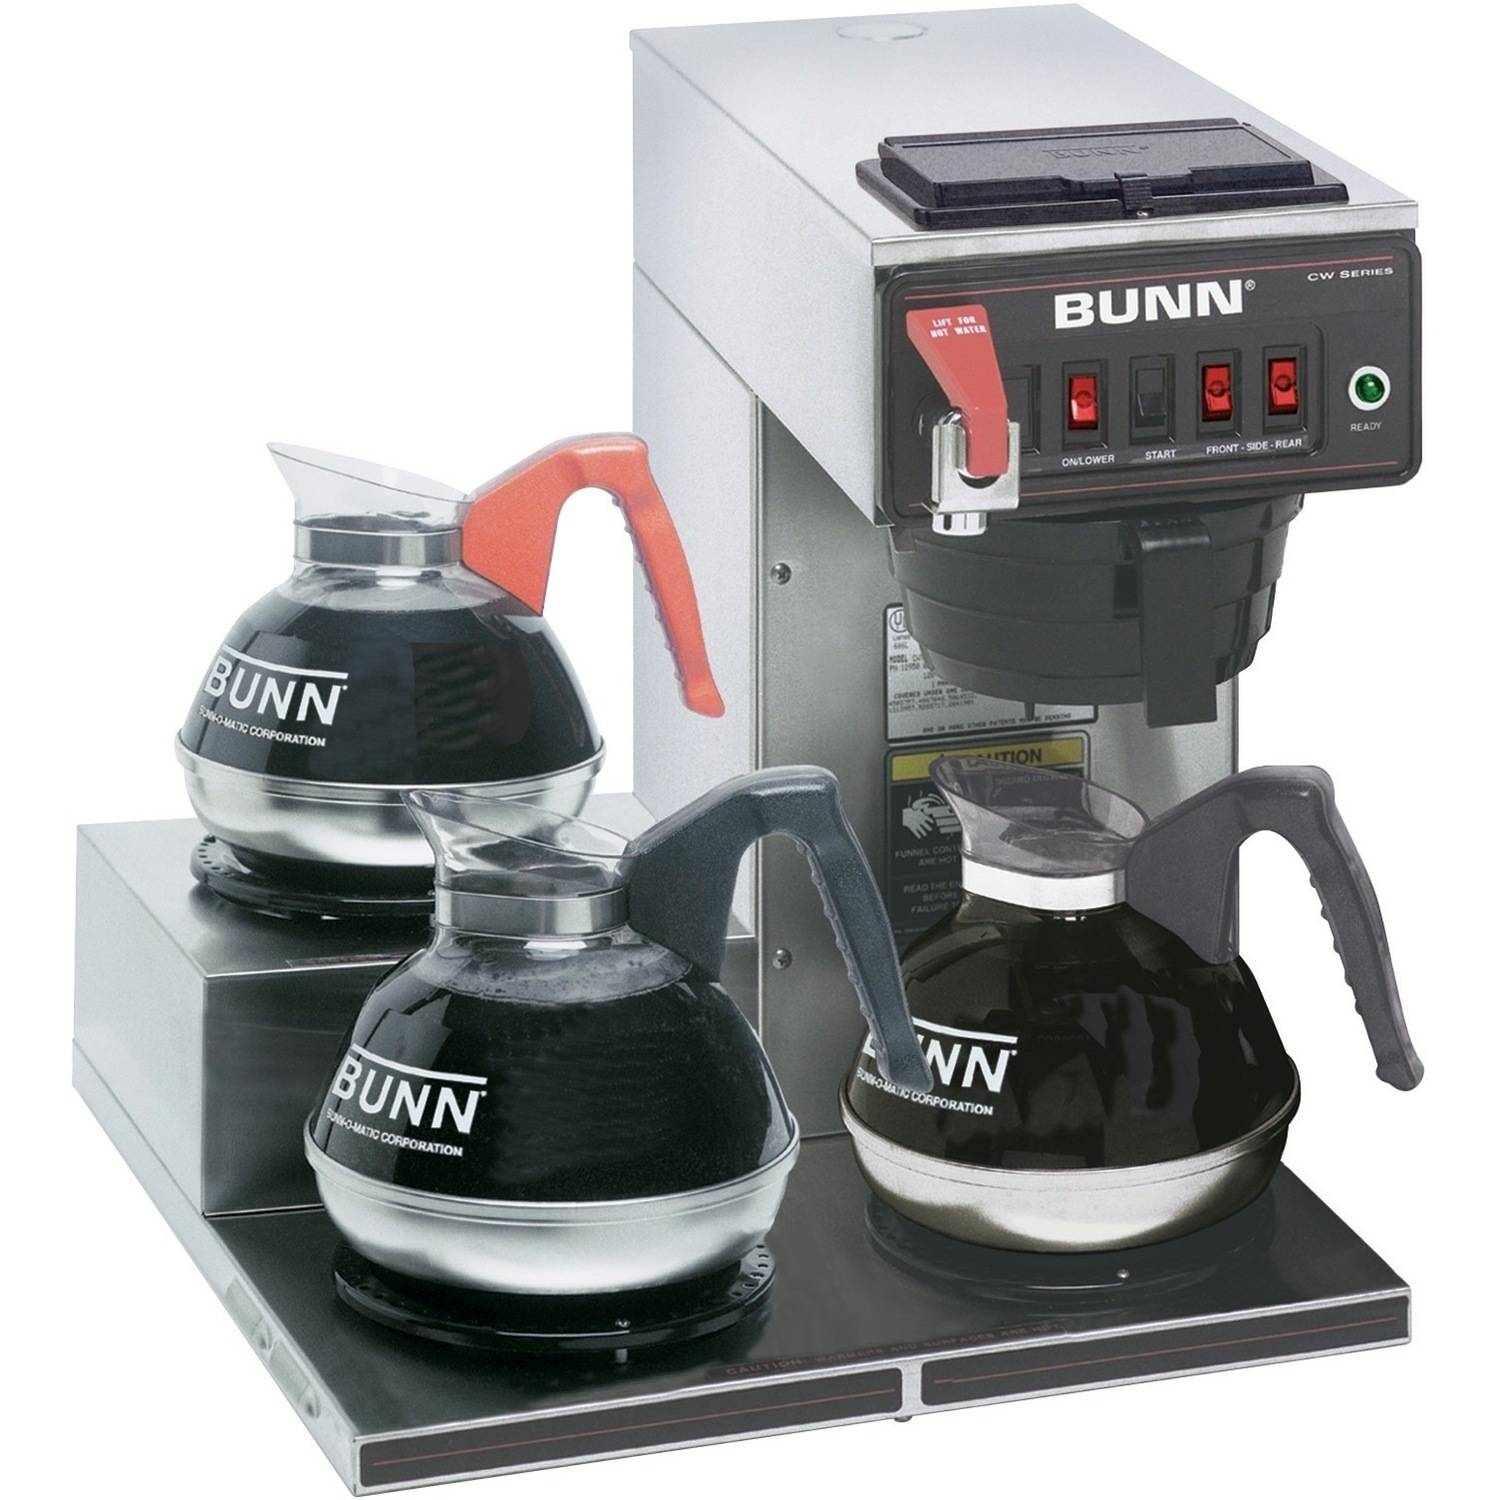 BUNN CWTF15-3 3L Left, 12-Cup Automatic Commercial Coffee Brewer, 3 Warmers, 12950.0298